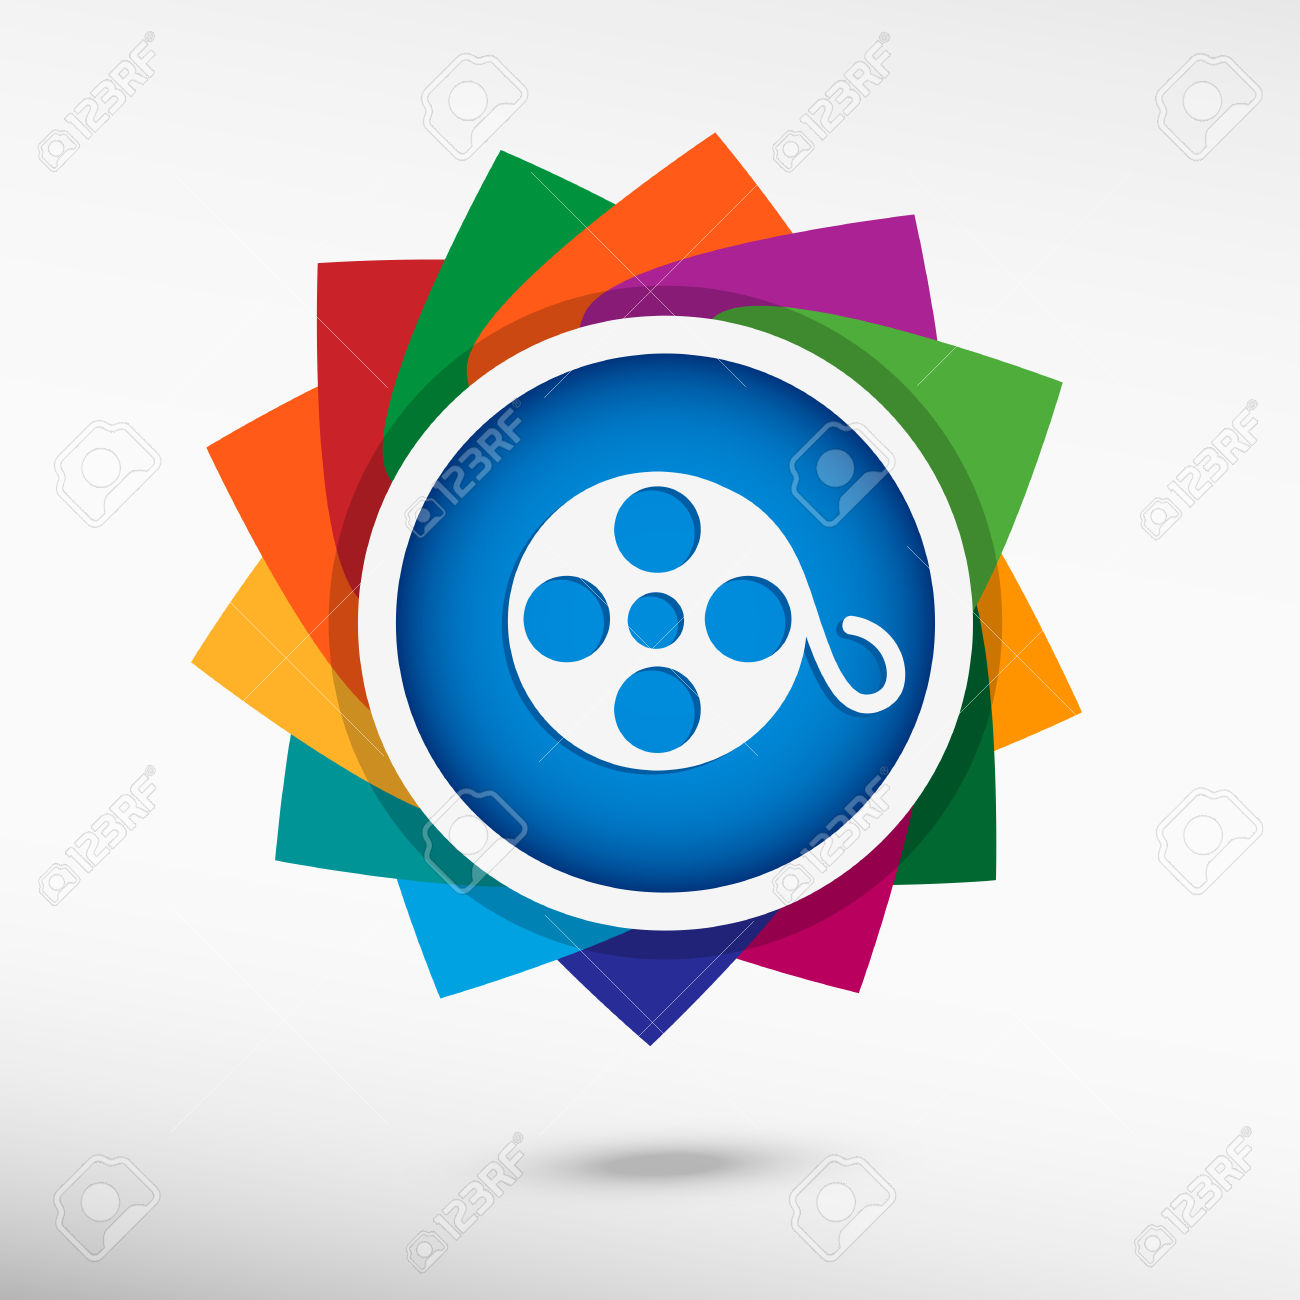 Film Reel Color Icon. Flat Design Style Royalty Free Cliparts.